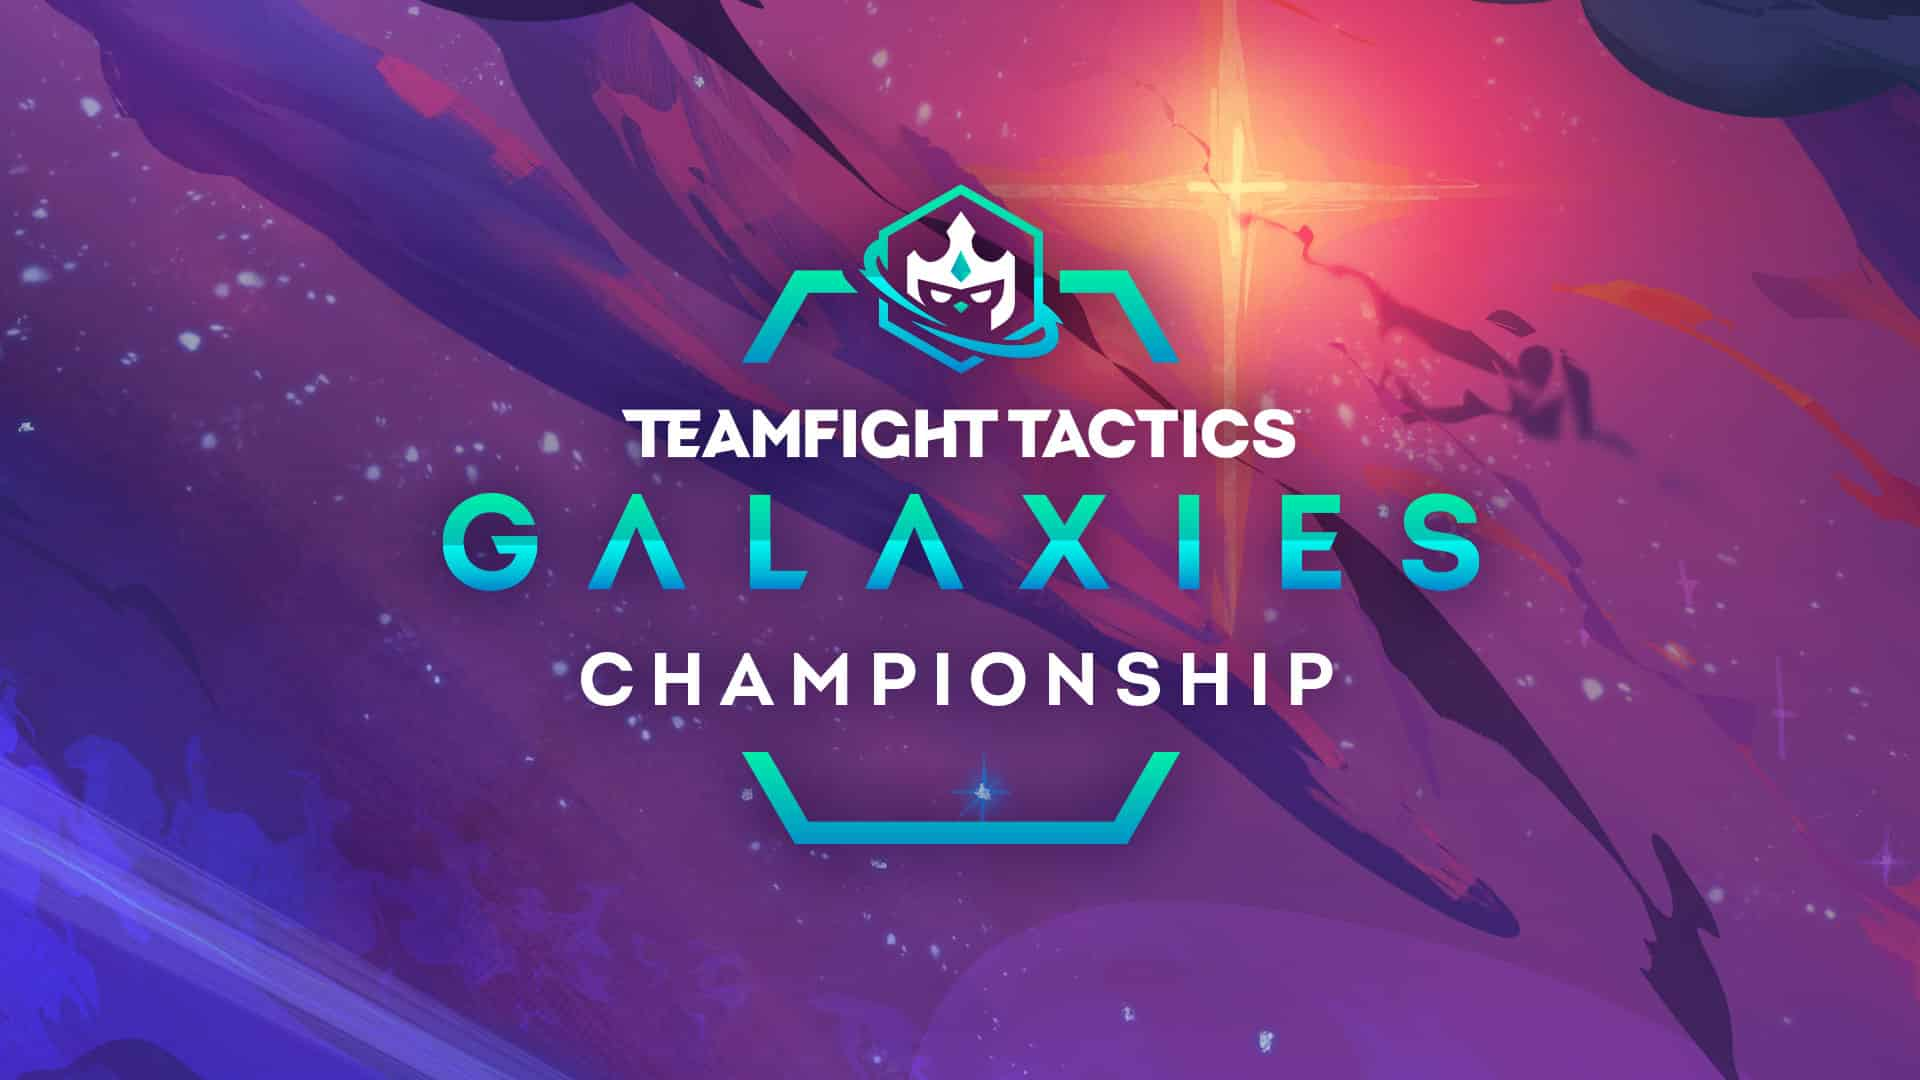 TFT Galaxies Championship Announcement Banner